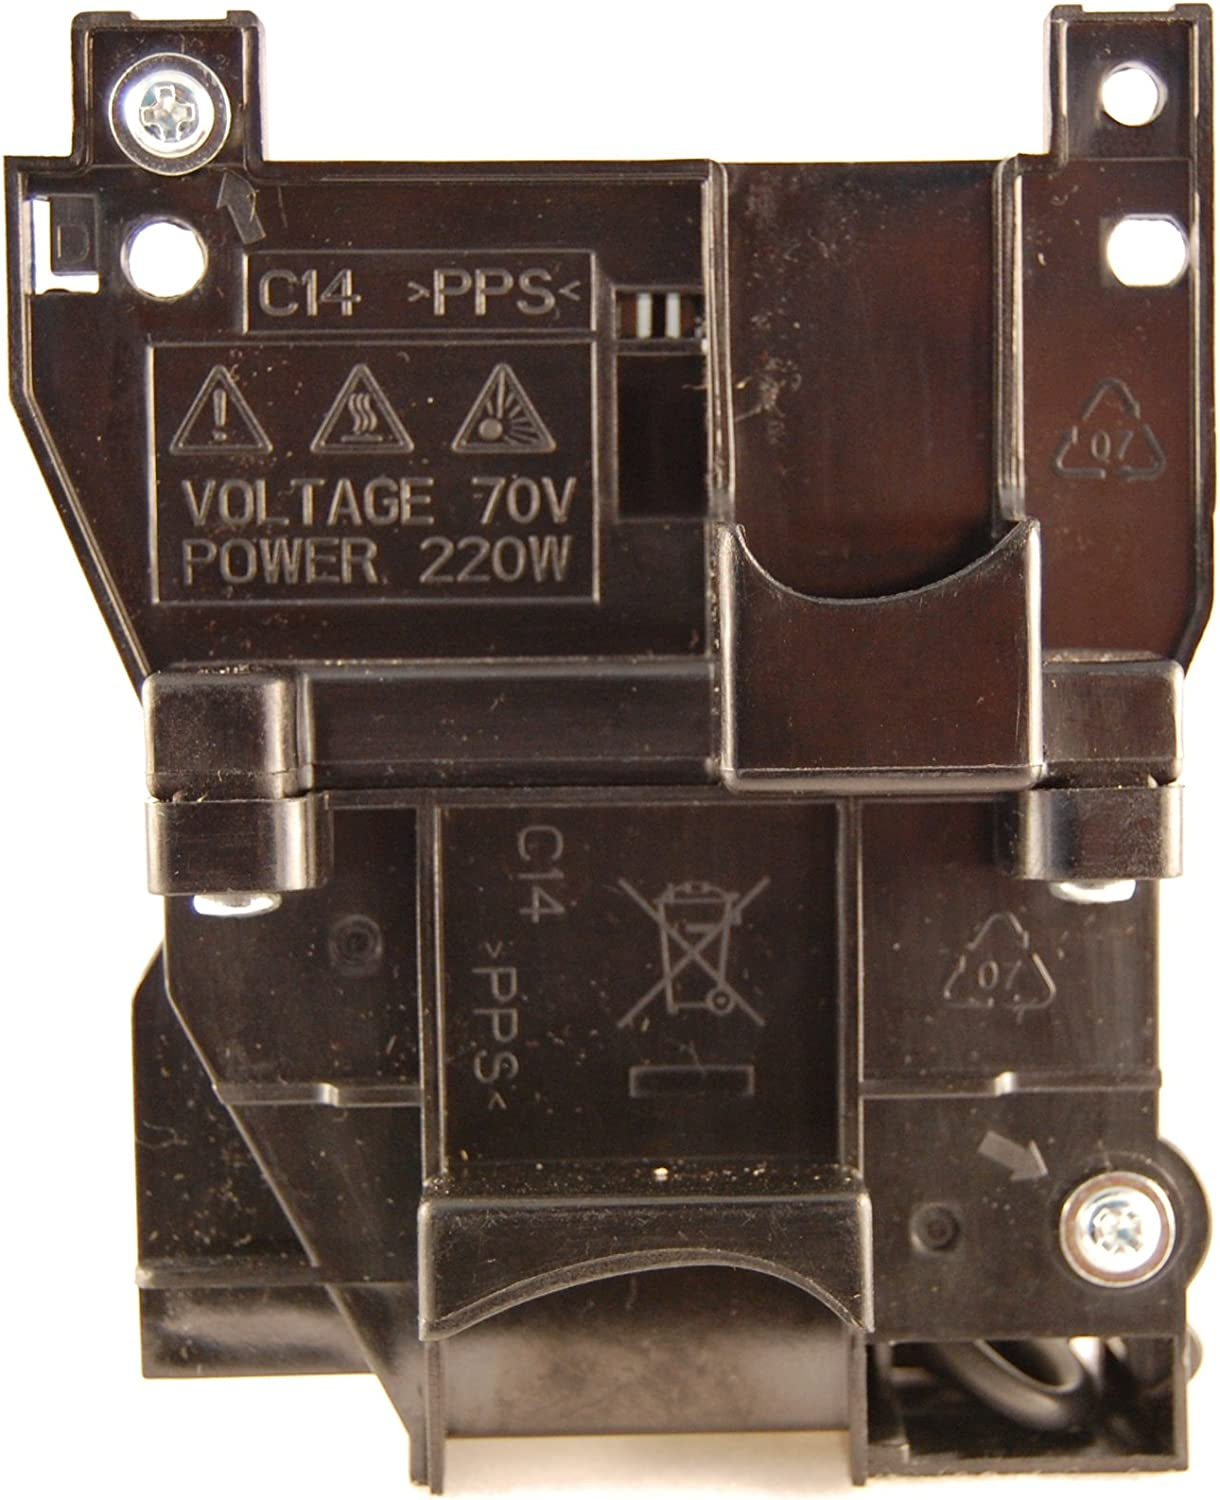 HITACHI DT00841 OEM Projector LAMP Equivalent with HOUSING